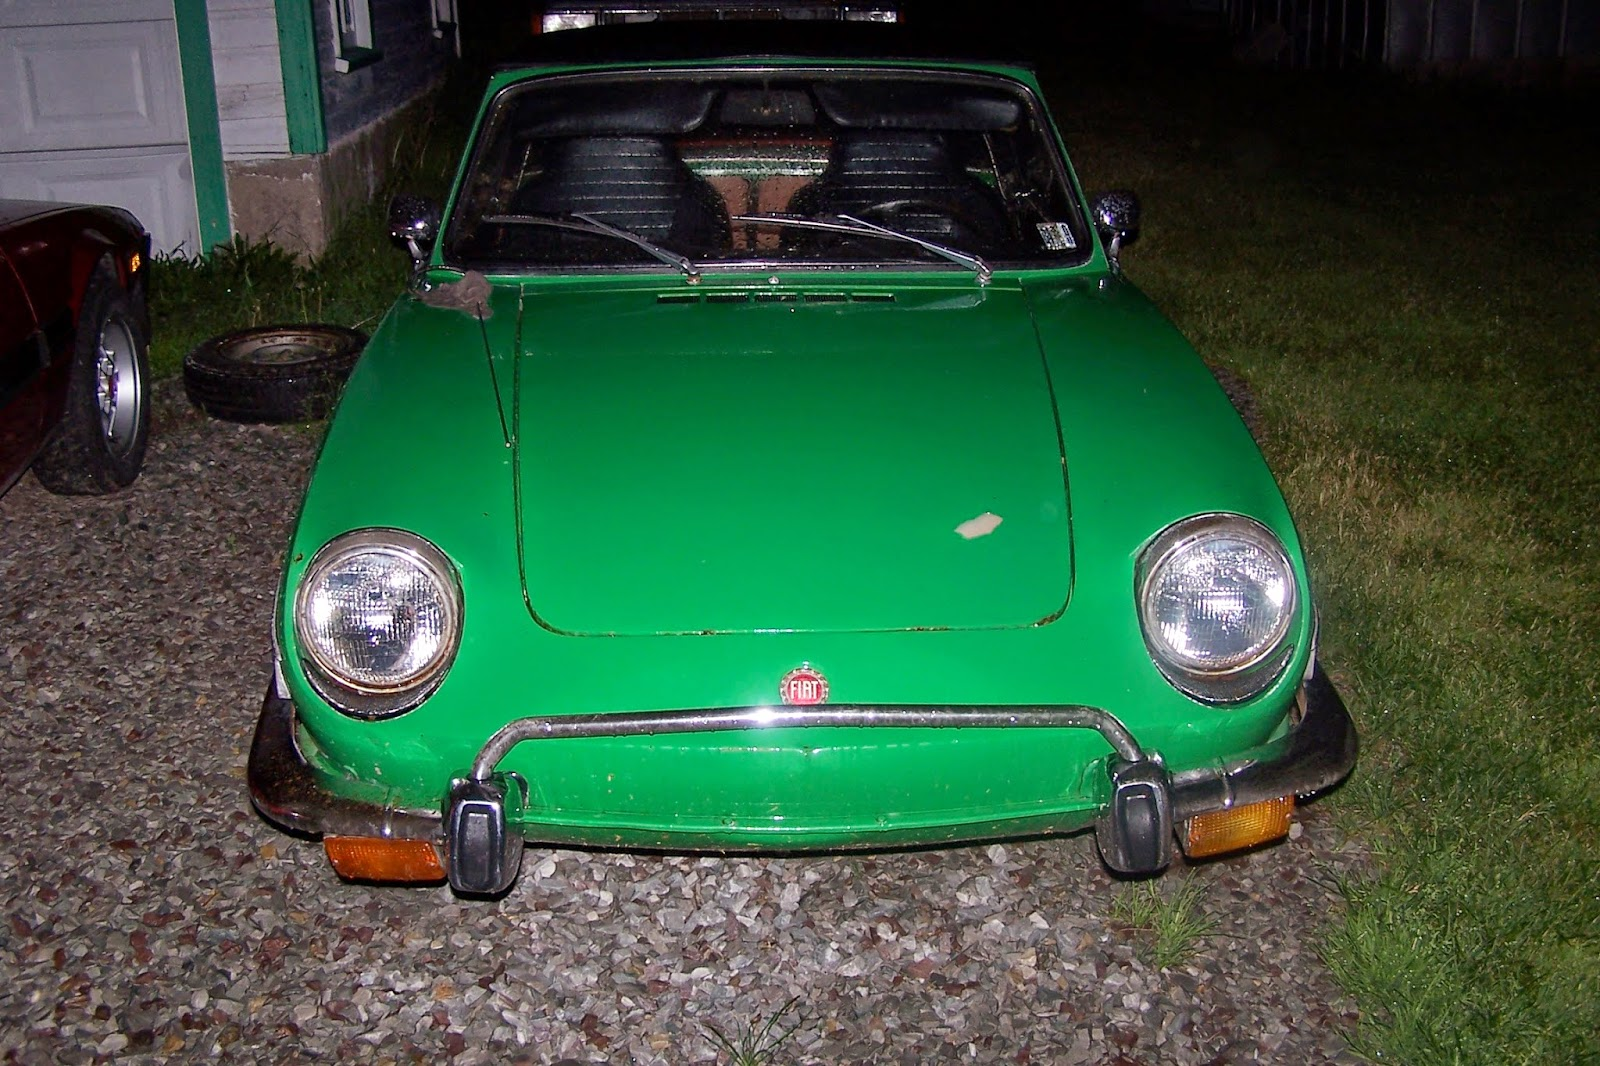 hight resolution of i m a single guy out on my own with a few bucks in his pocket and i happened upon a cute little 1973 fiat 850 spider